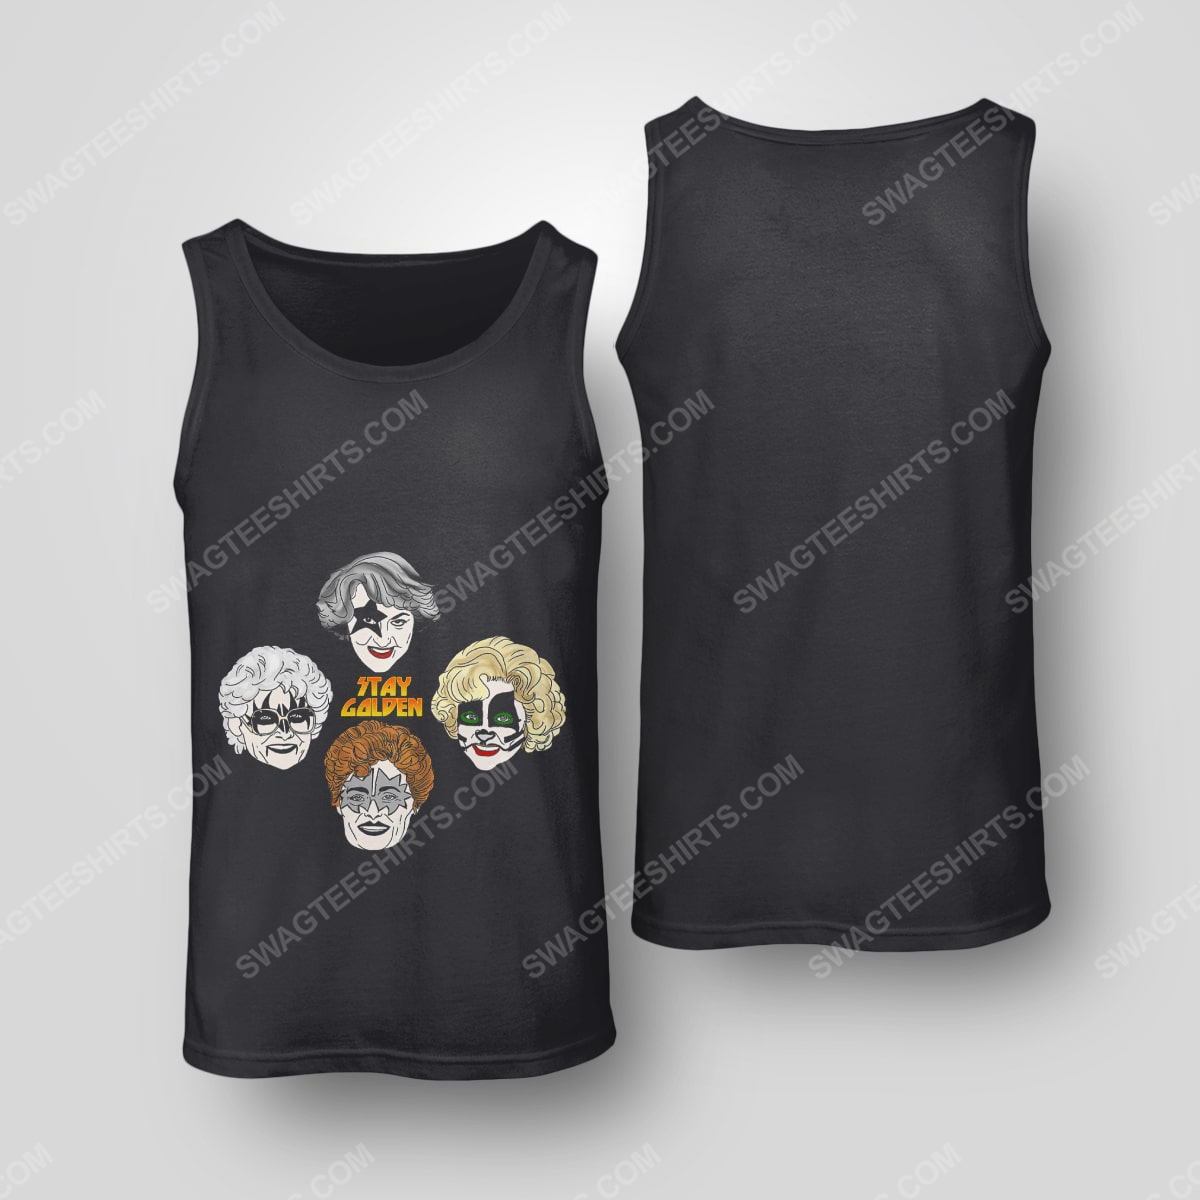 Kiss and the golden girls stay golden tank top(1)